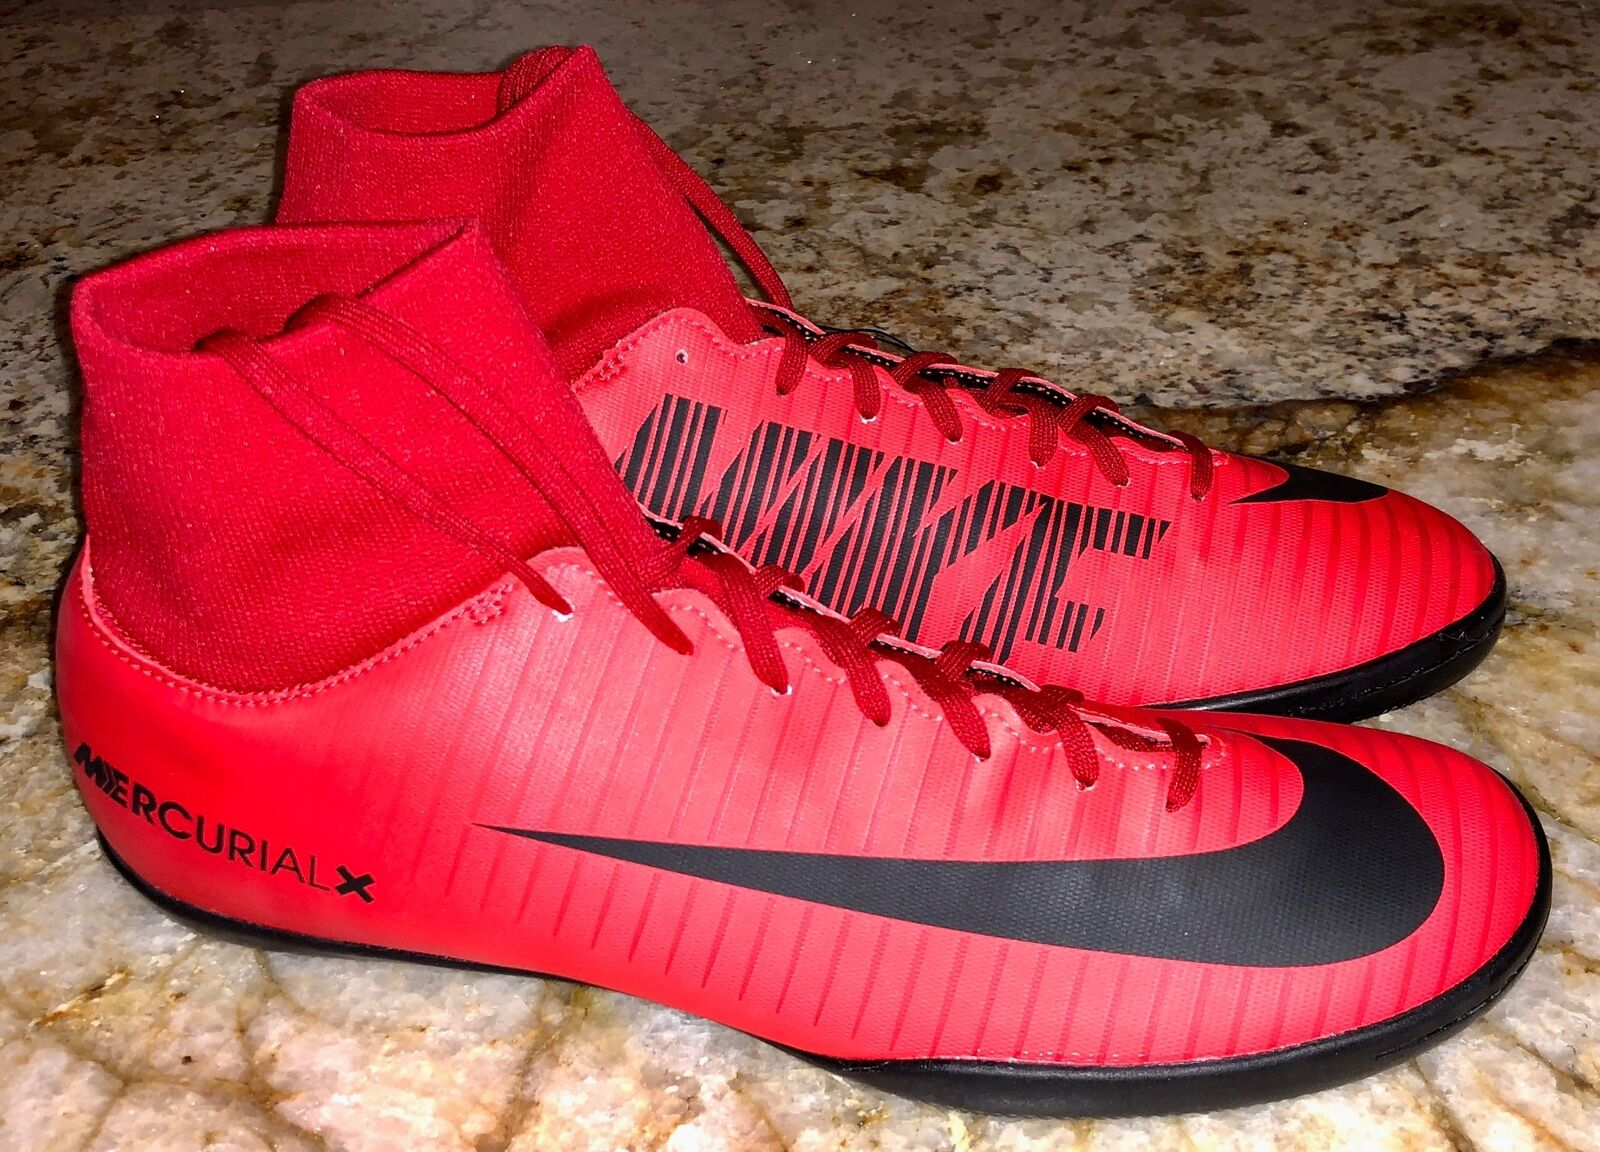 NIKE MercurialX Victory VI Dynamic Fit Indoor Soccer shoes 7 8.5 9 9.5 10 11 12